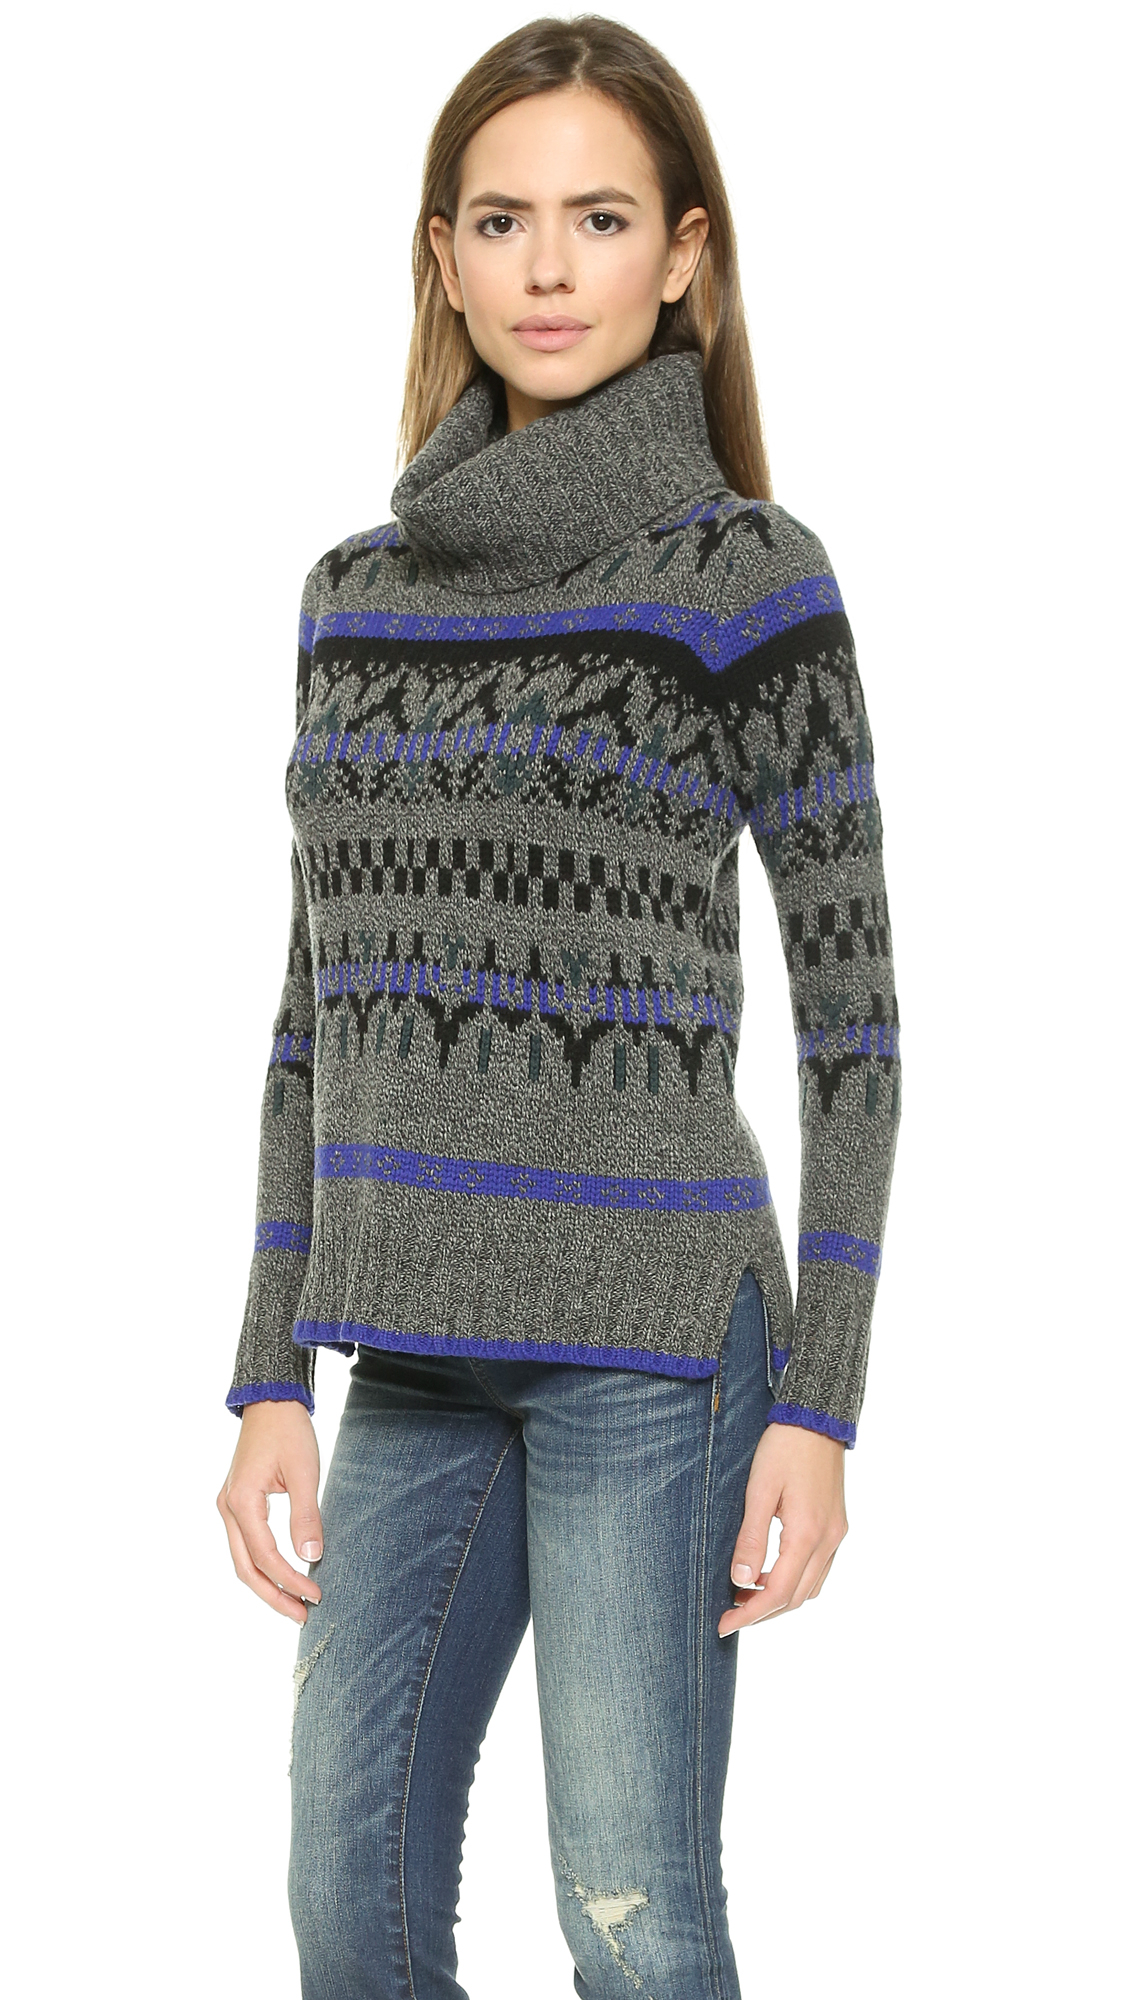 Madewell Fair Isle Turtleneck Sweater - Heather Static in Gray | Lyst